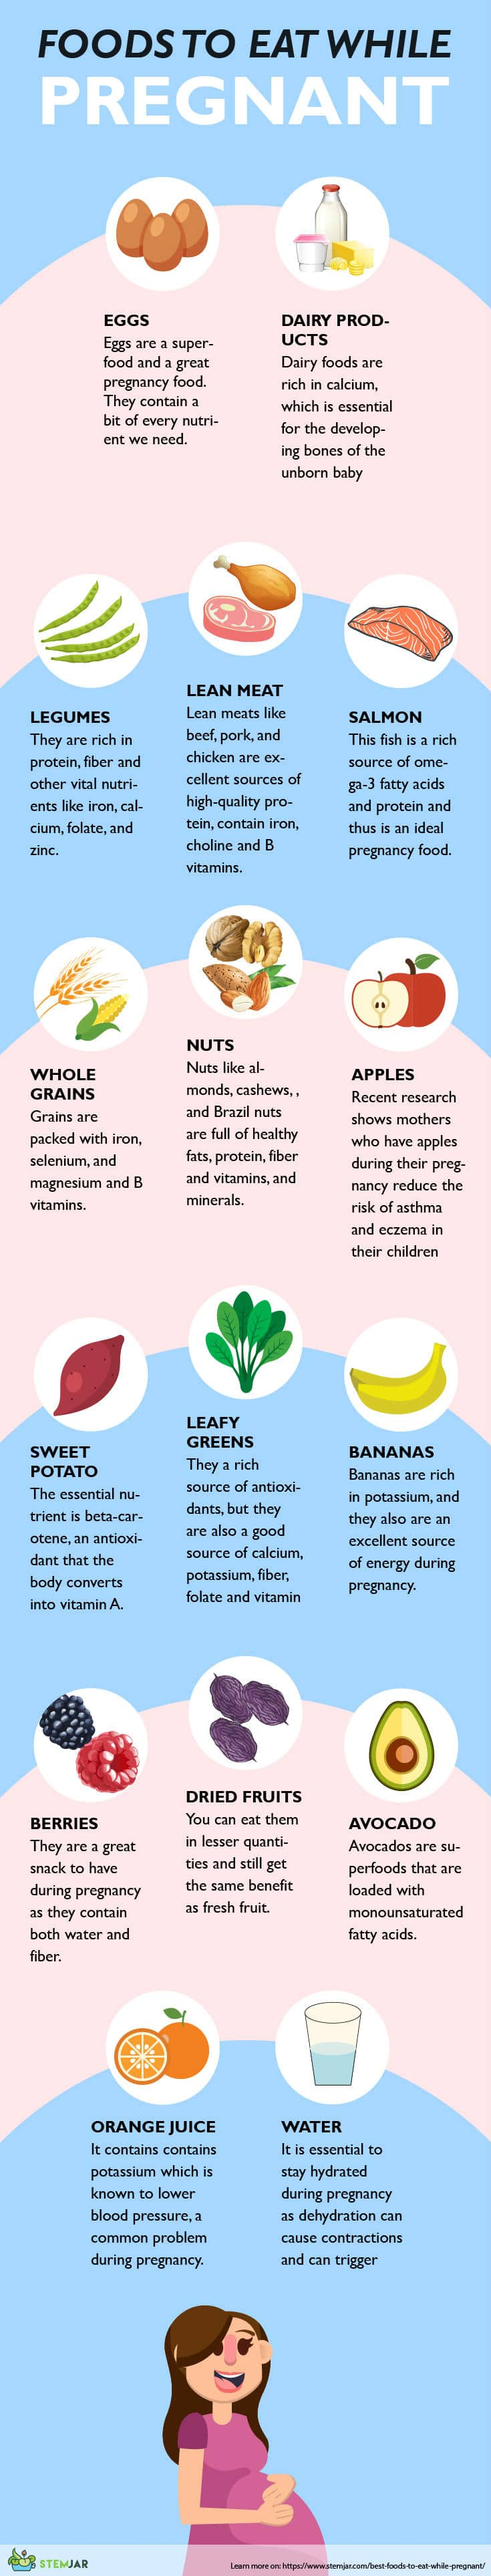 Food to eat when pregnant infographic